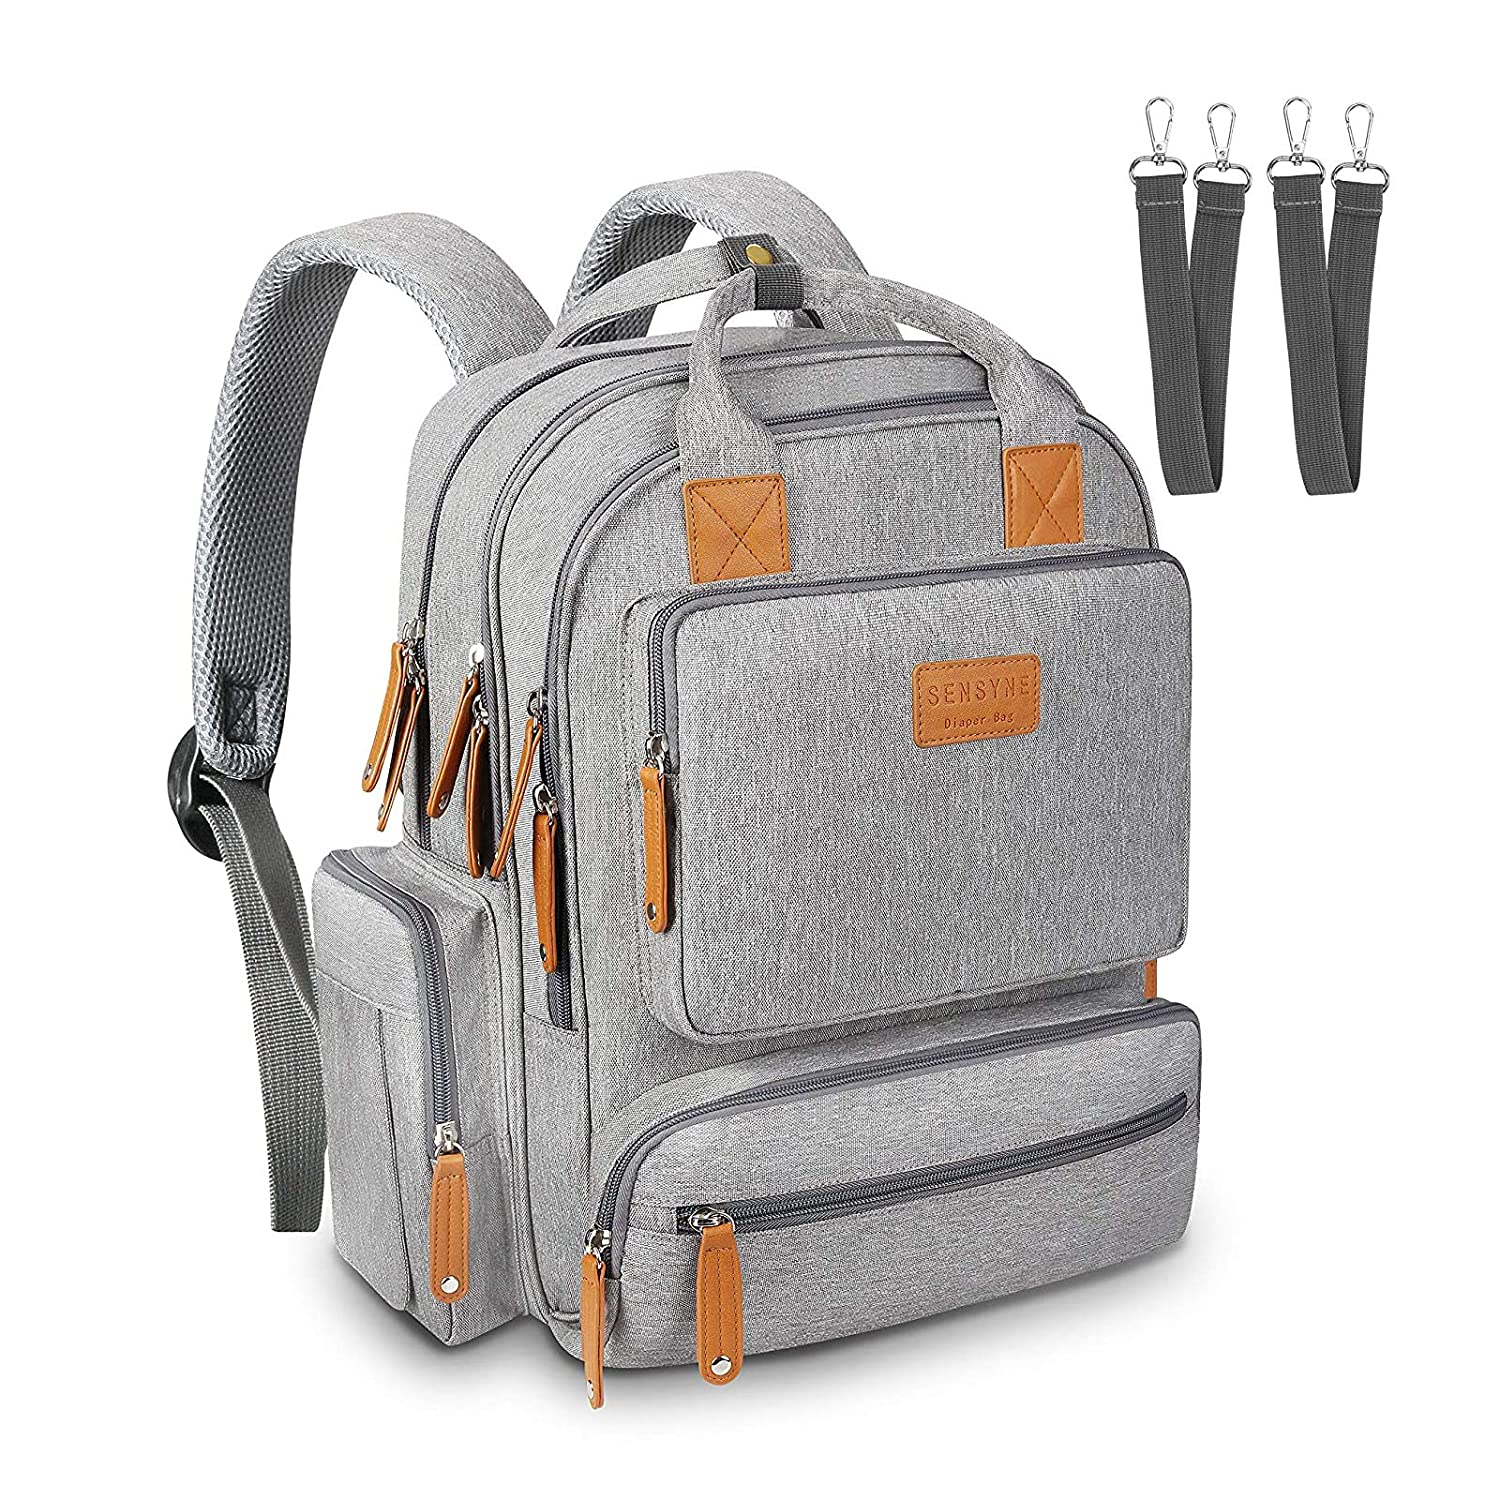 FOFRER Diaper Bag Backpack, Maternity Baby Changing Bags, Large Capacity Multifunctional Waterproof Travel Back Pack with Stroller Straps, Gift for Mom and Dad(Gray)